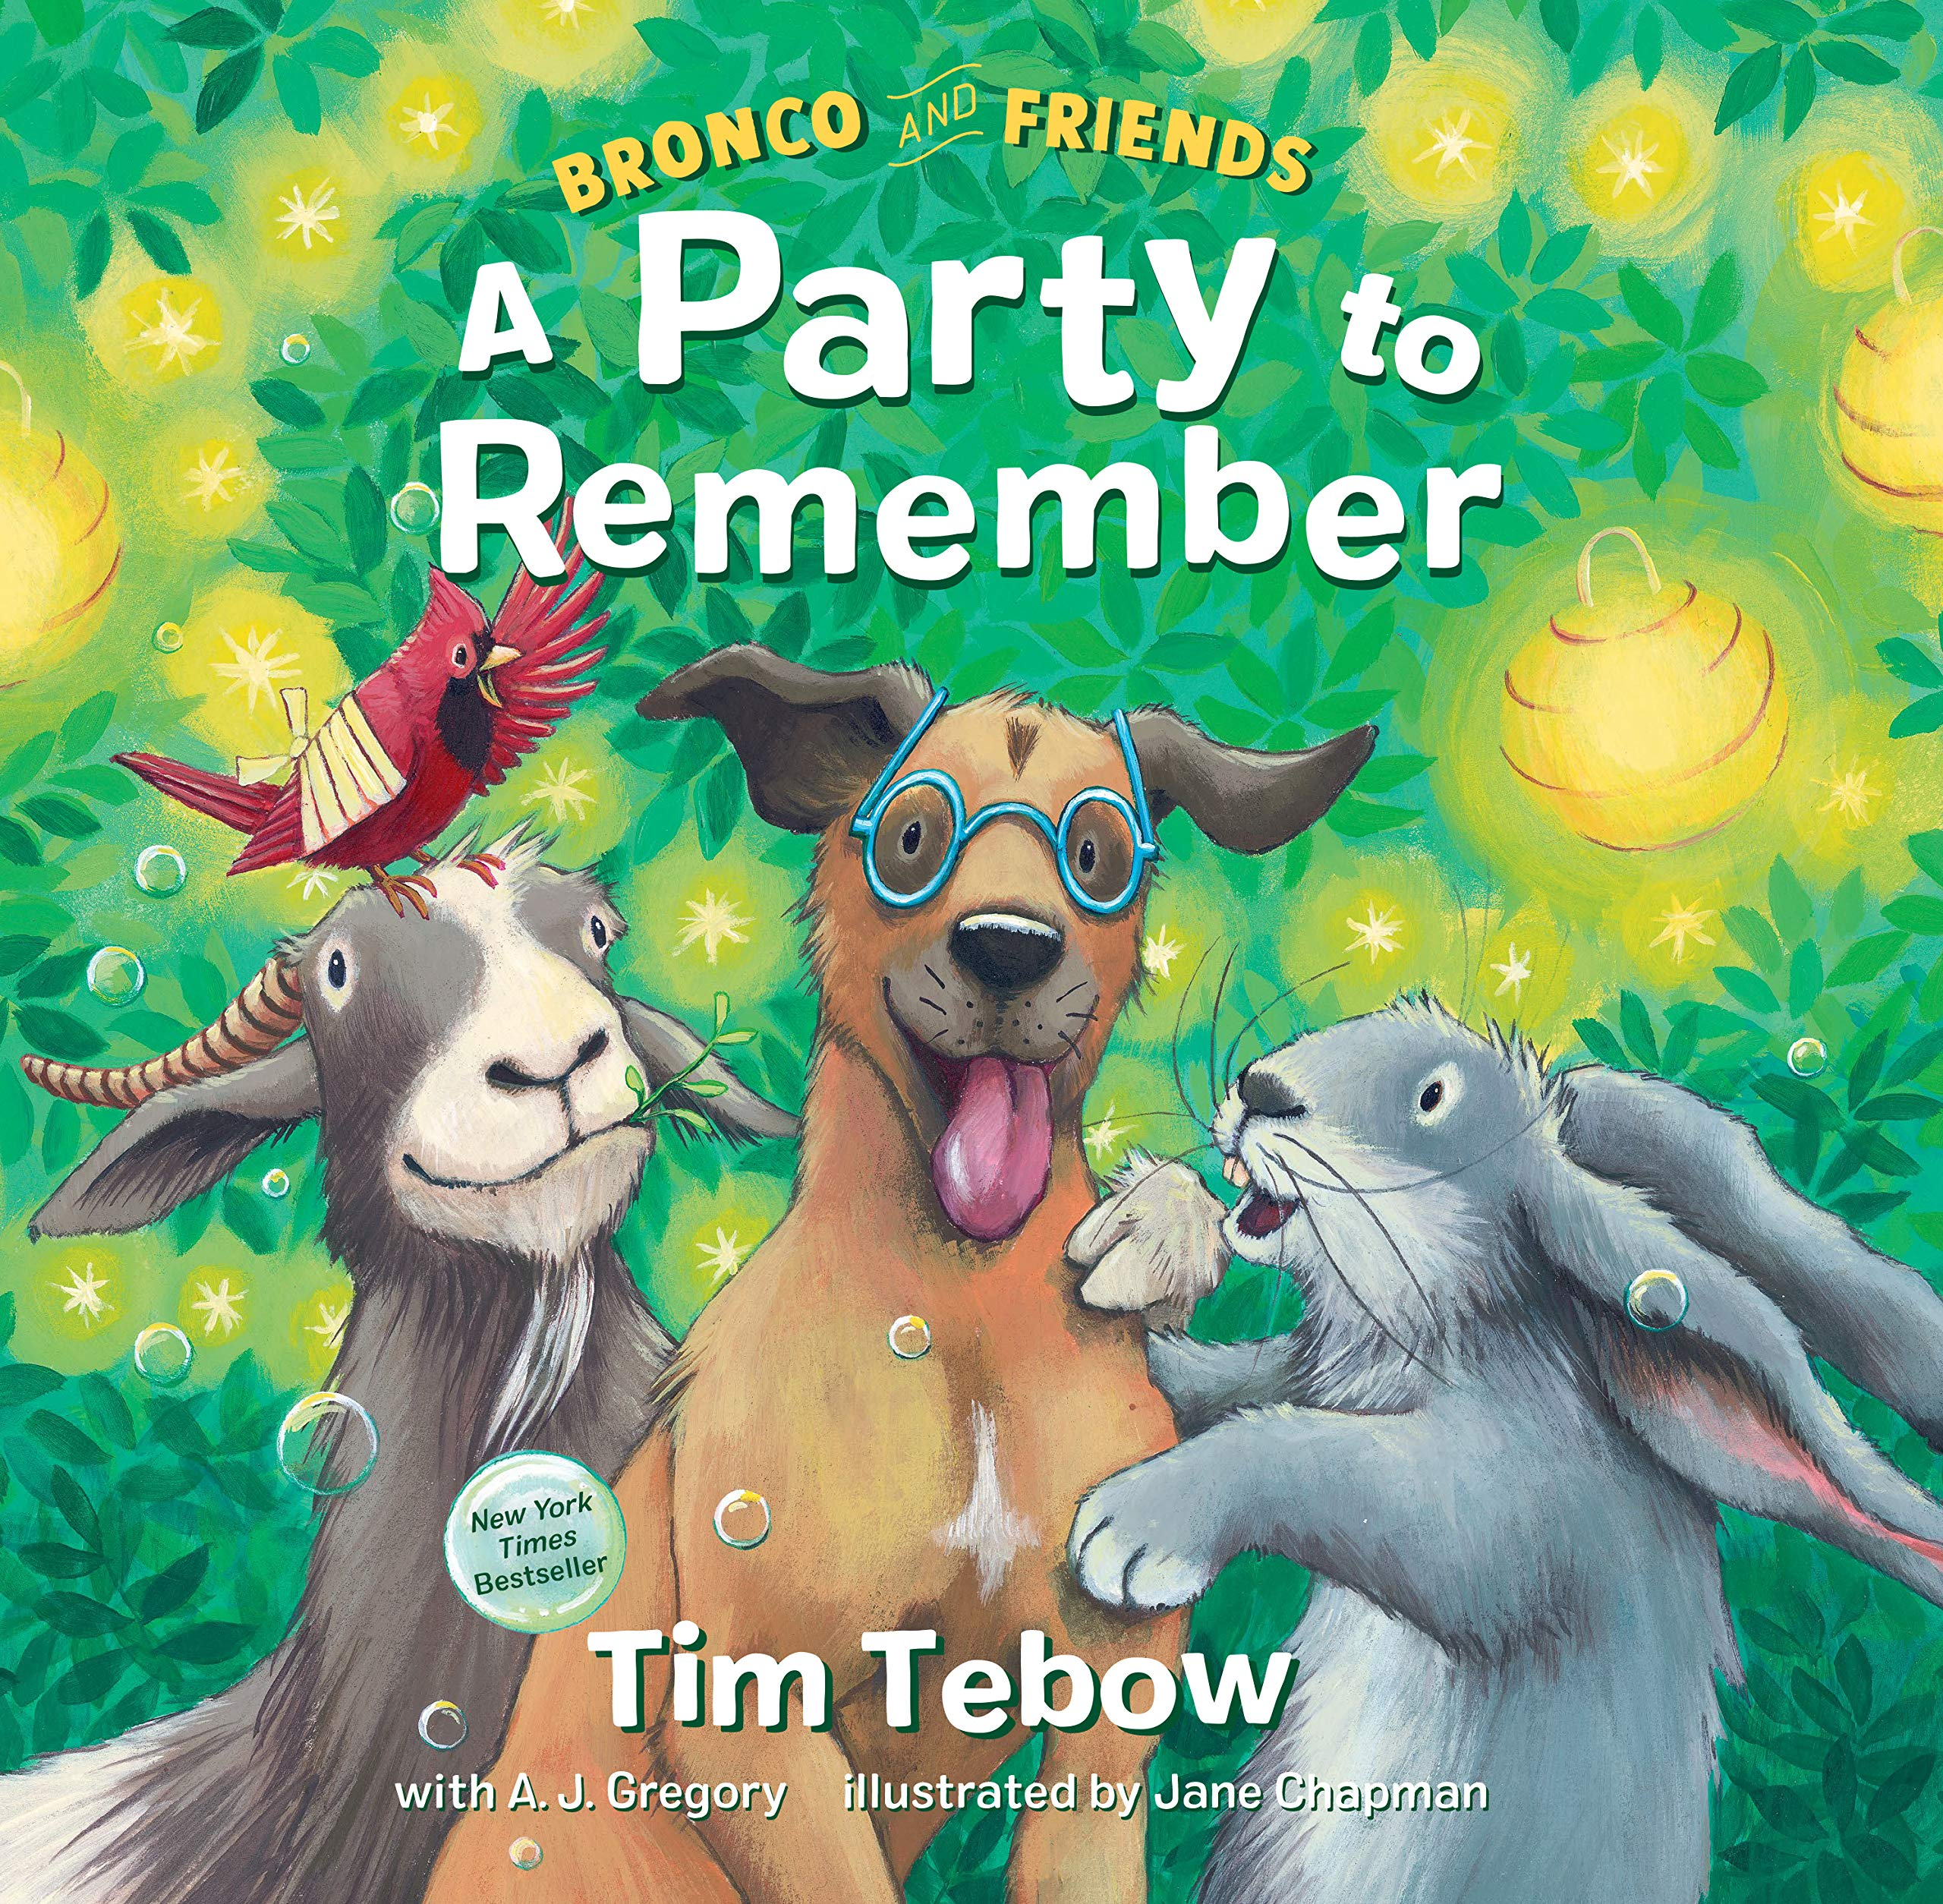 Bronco and Friends: A Party to Remember WeeklyReviewer